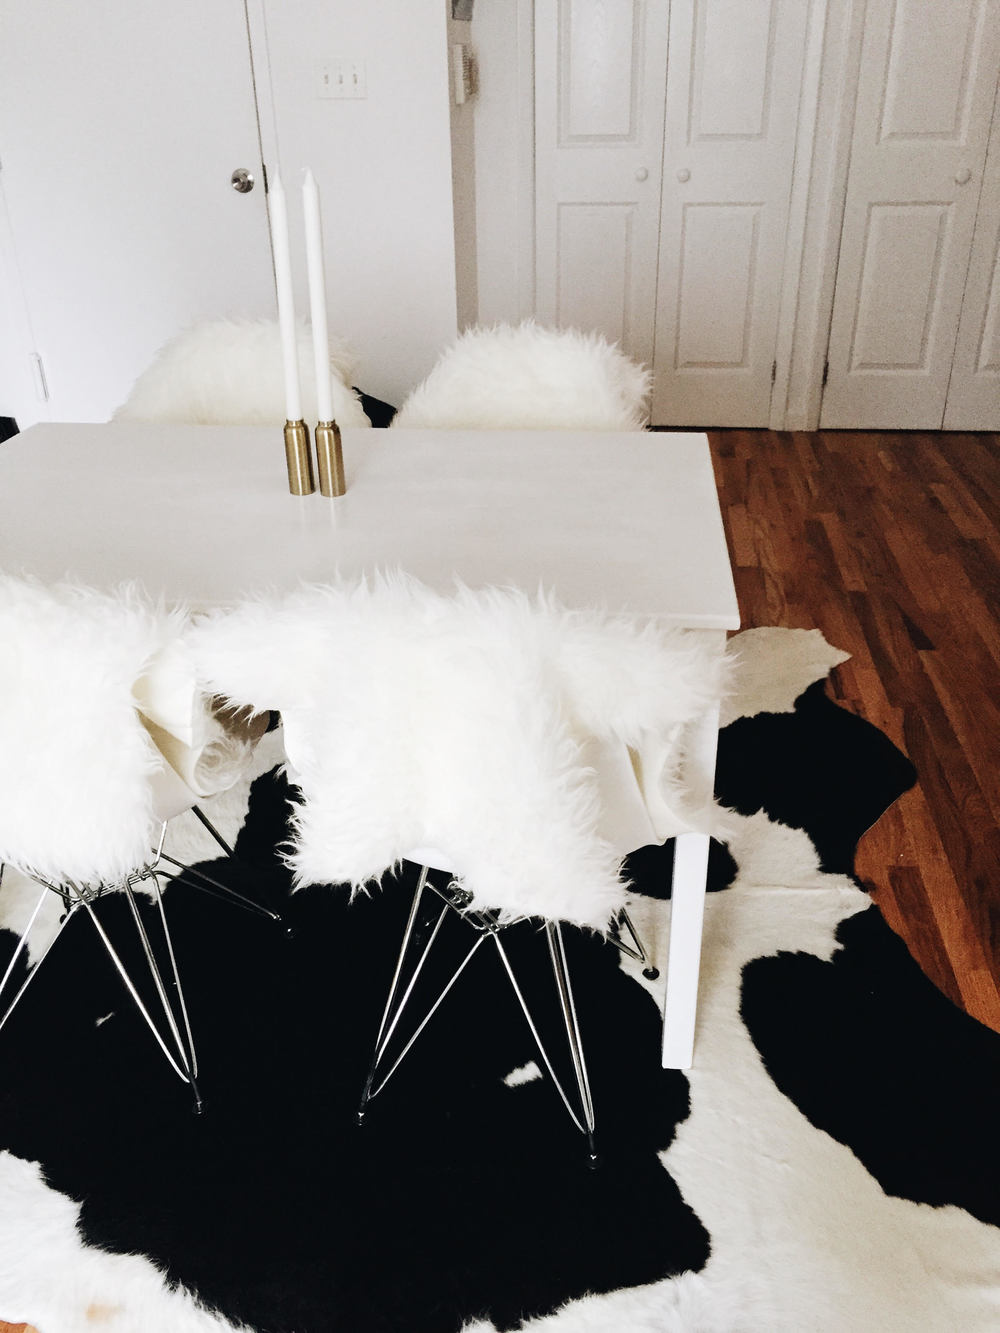 arushi khosla, arushi.co, williamsburg, home decor, cowhide rug, minimalist decor, cb2, west elm, shag rugs, all white decor